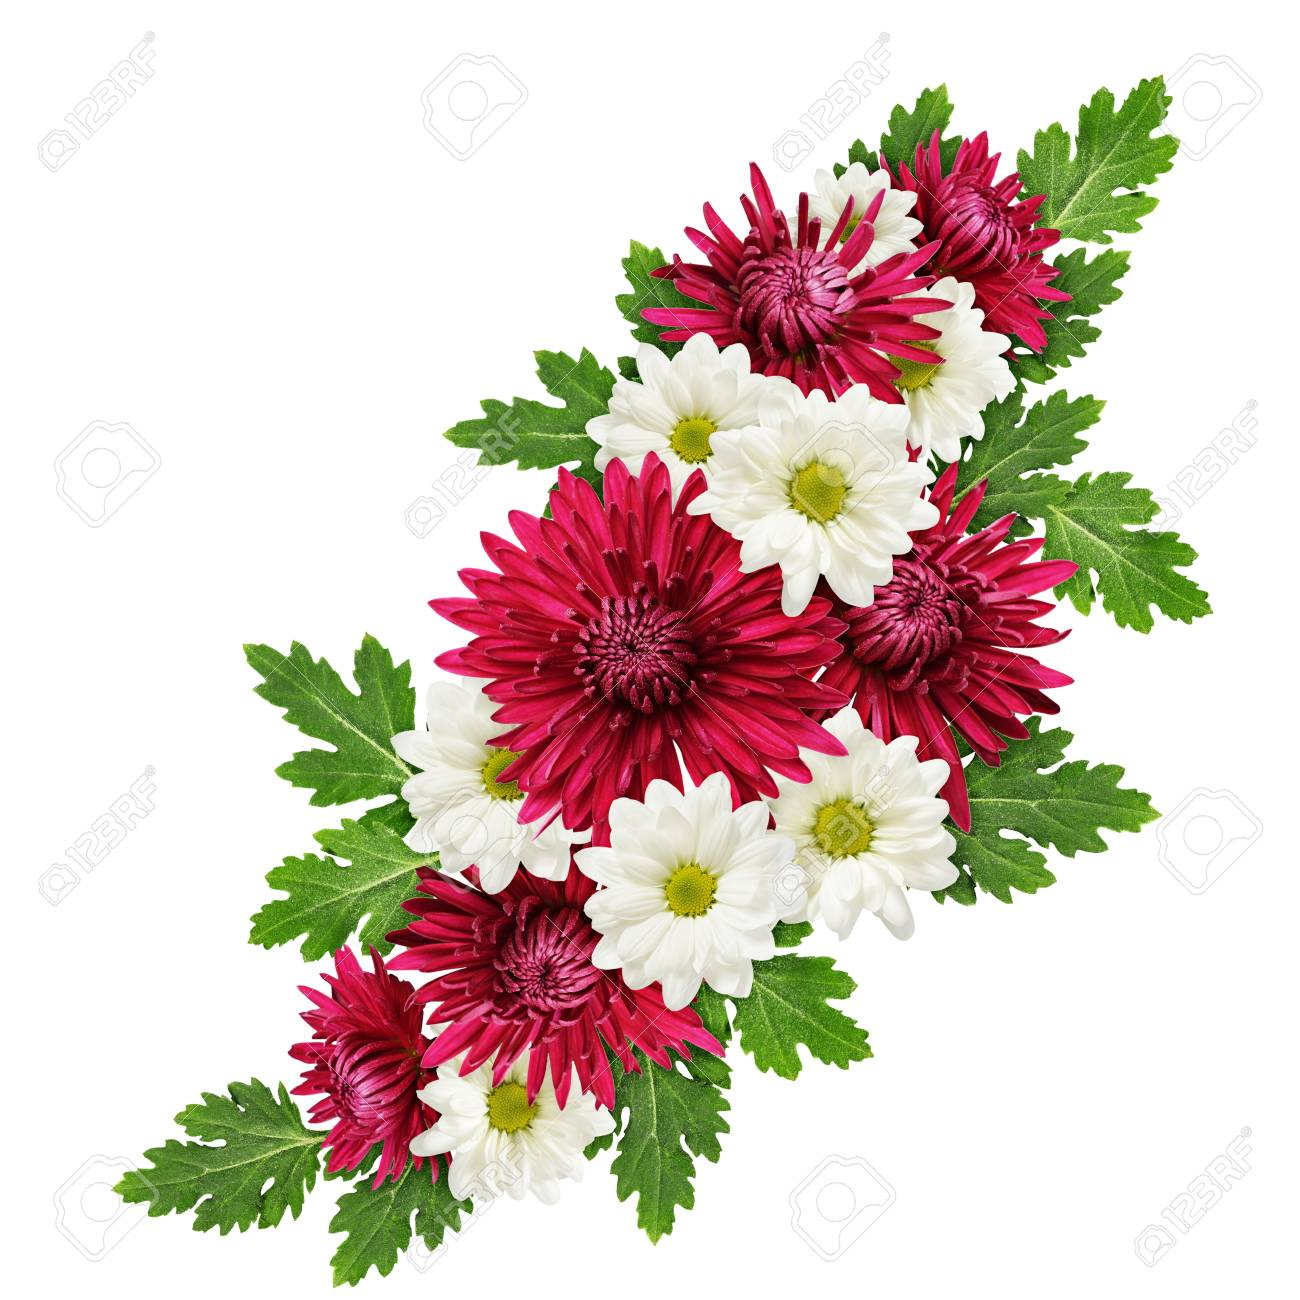 Aster flowers bouquet isolated on white stock photo picture and aster flowers bouquet isolated on white stock photo 63299038 izmirmasajfo